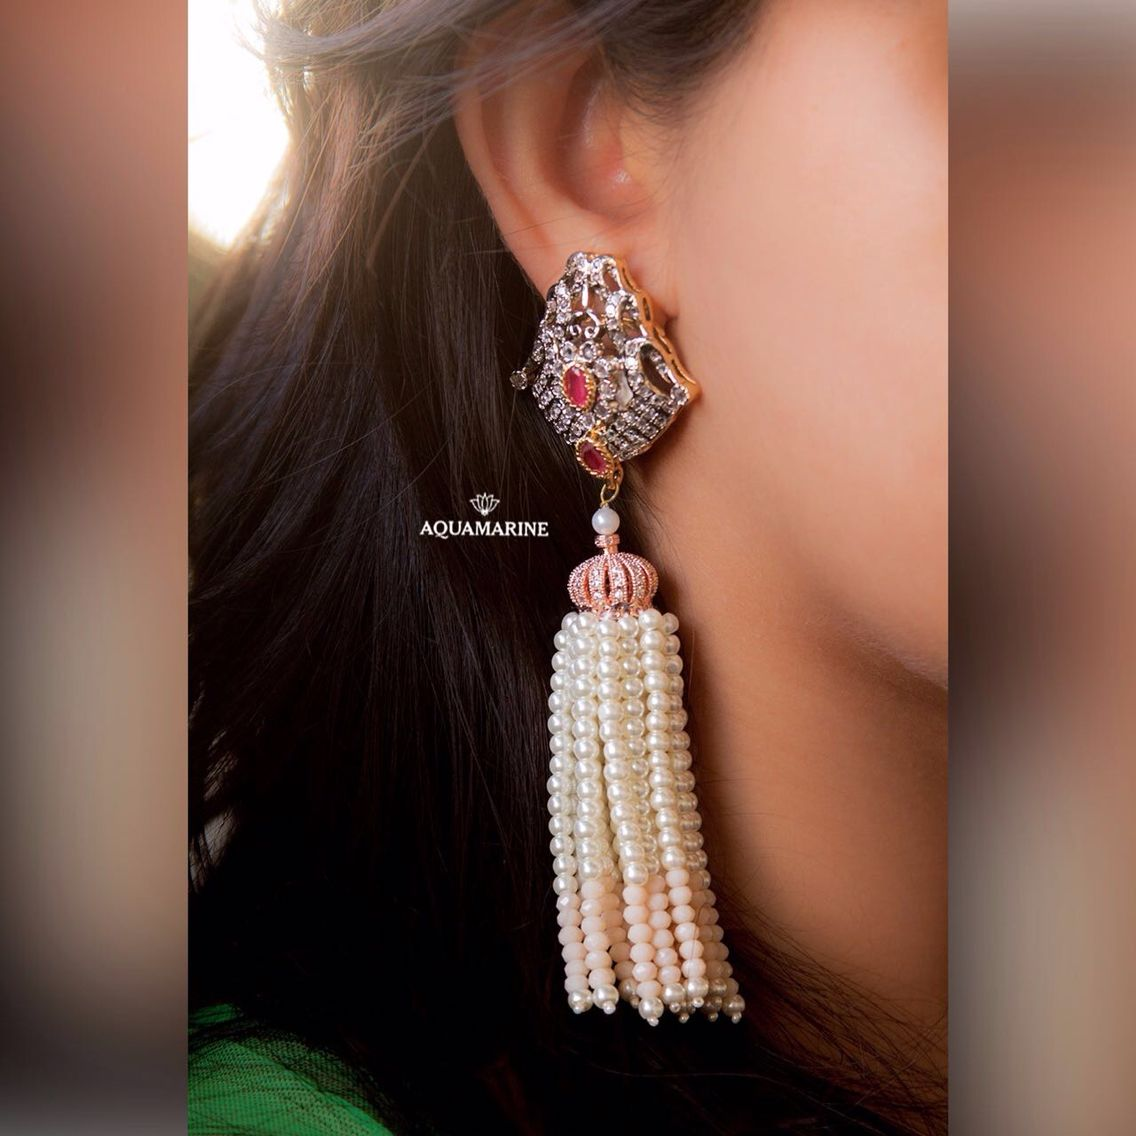 These earrings in the most amazing design with diamante' and pretty drop pearl tassels are a must have accessory. By Aquamarine.  #aquamarine_jewellery #designer #jewellery #accessories #fashion #trends #wedding #earrings #diamonds #pearls #mumbai #india #colaba #breachcandy #lokhandwala #aquamarinejewellery